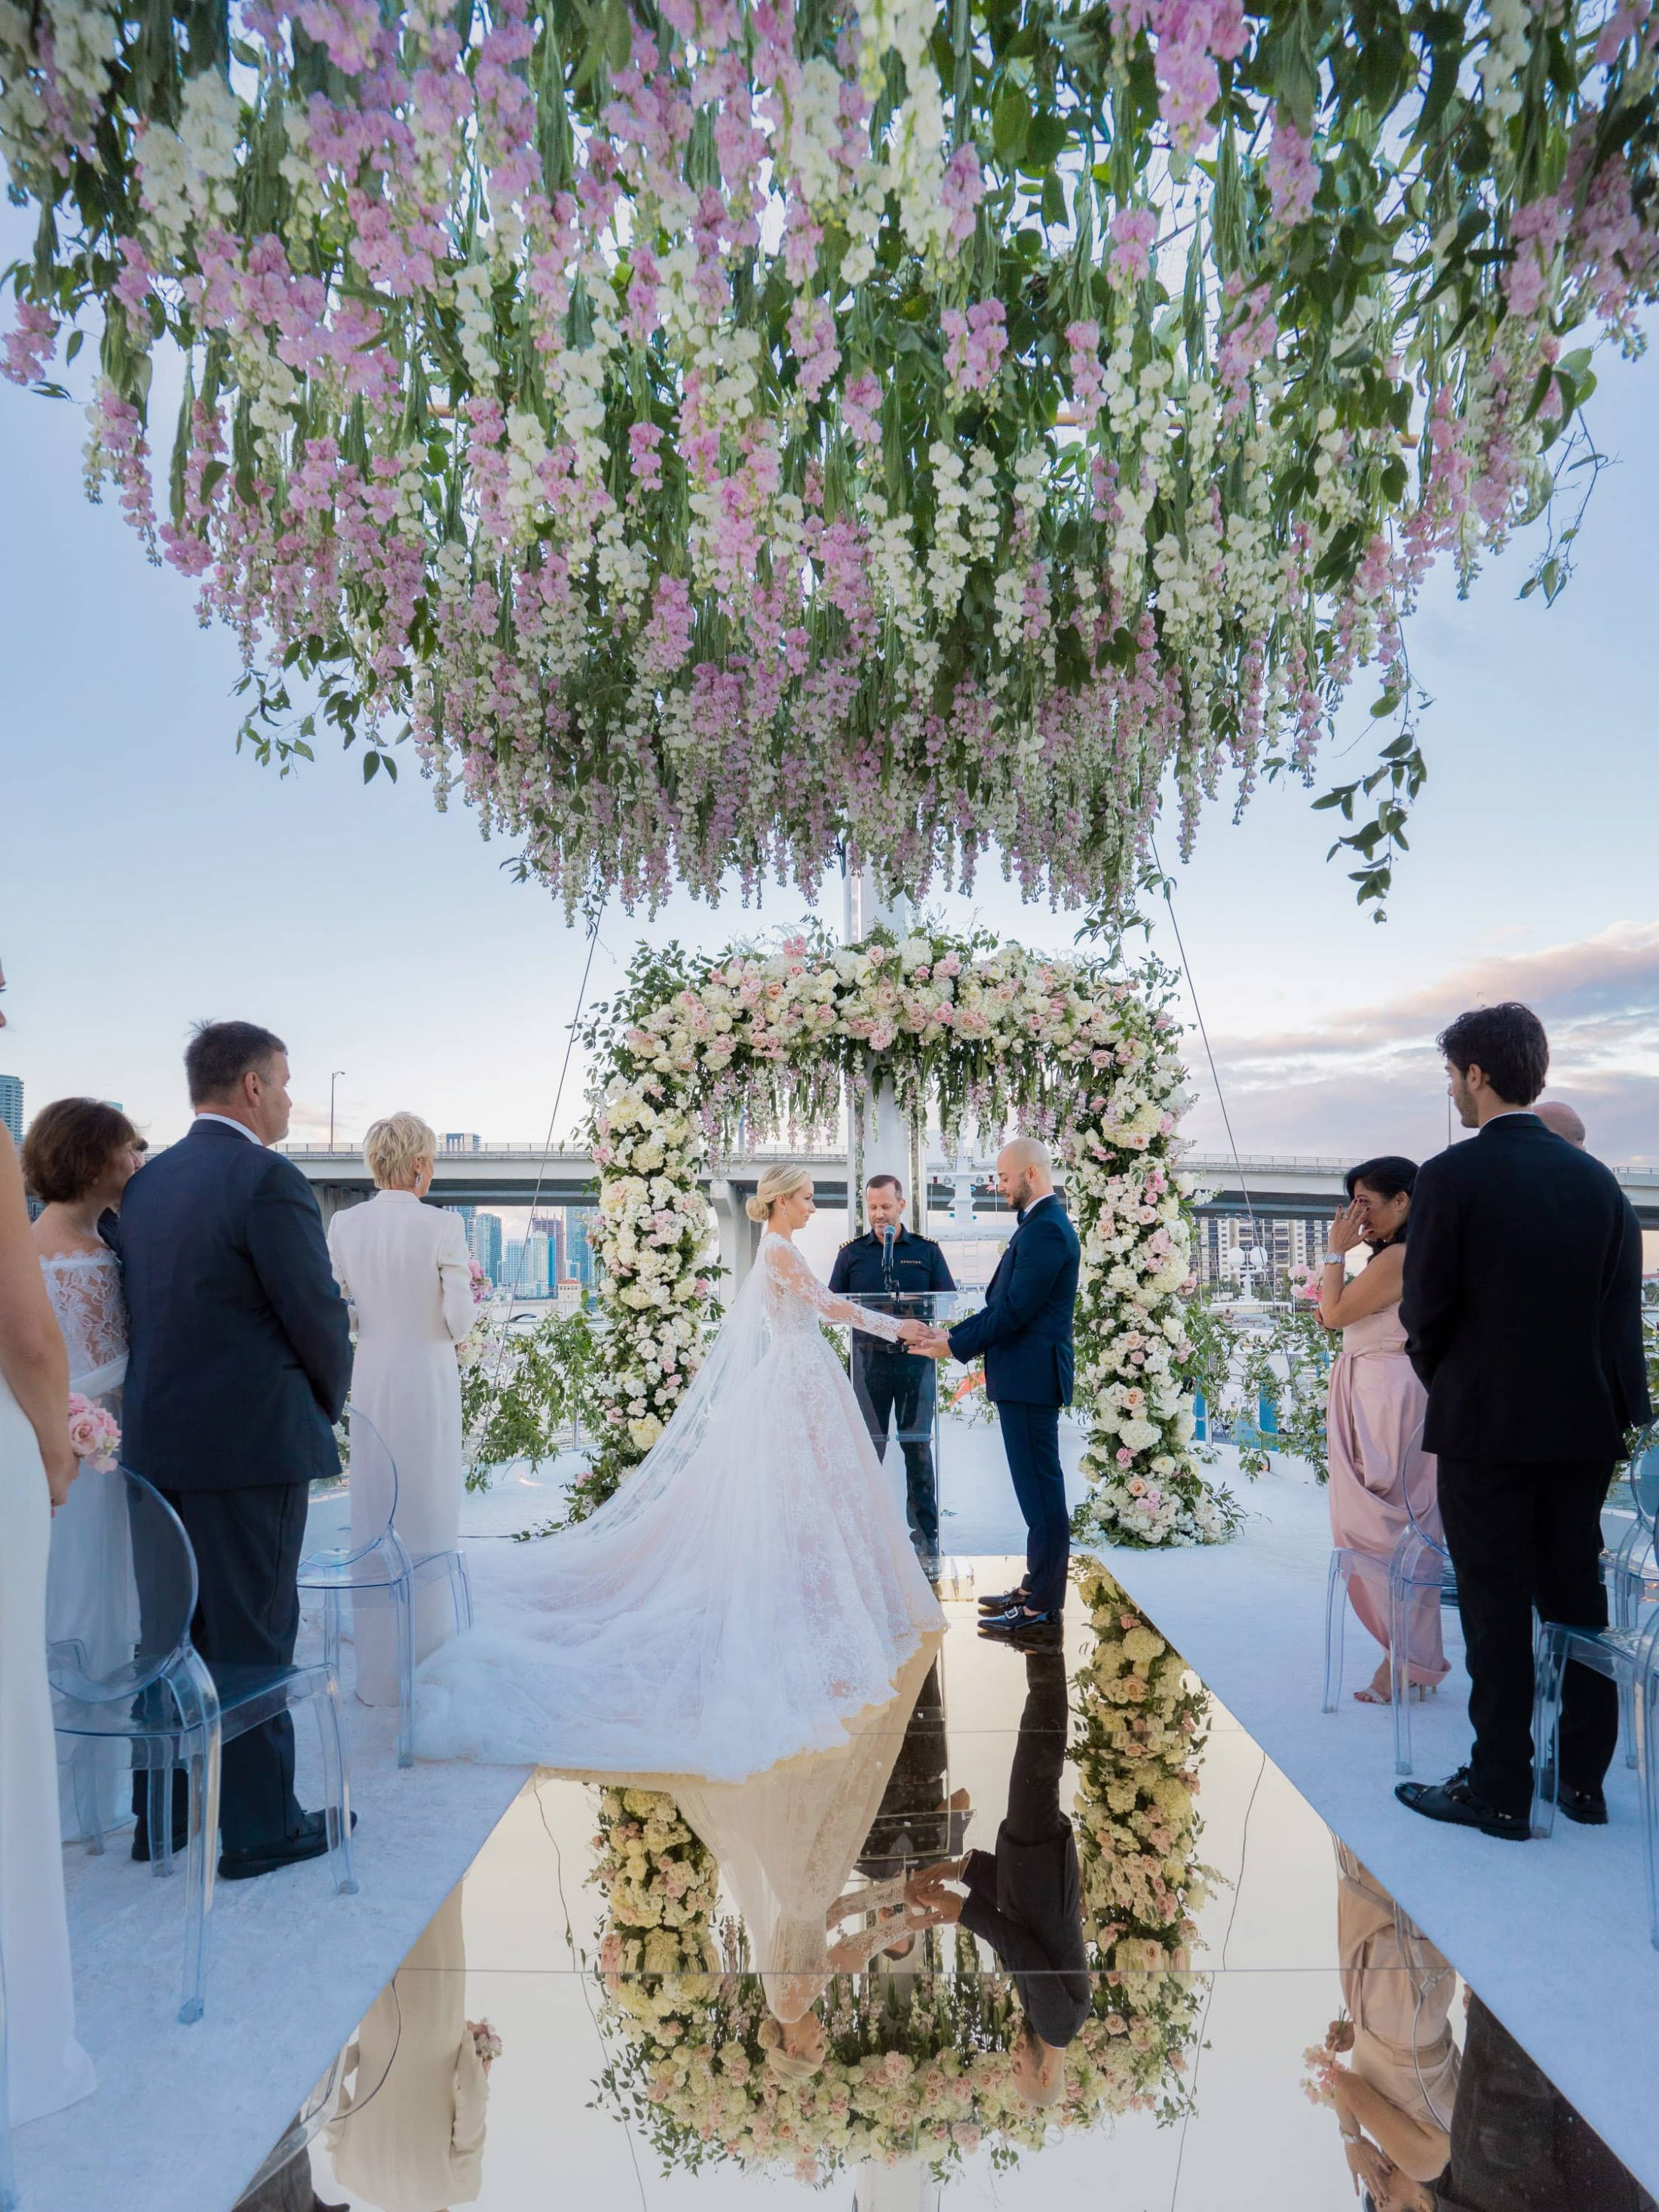 Bride and groom exchanging vows underneath cascading flowers at this Miami yacht wedding | Photo by Corbin Gurkin